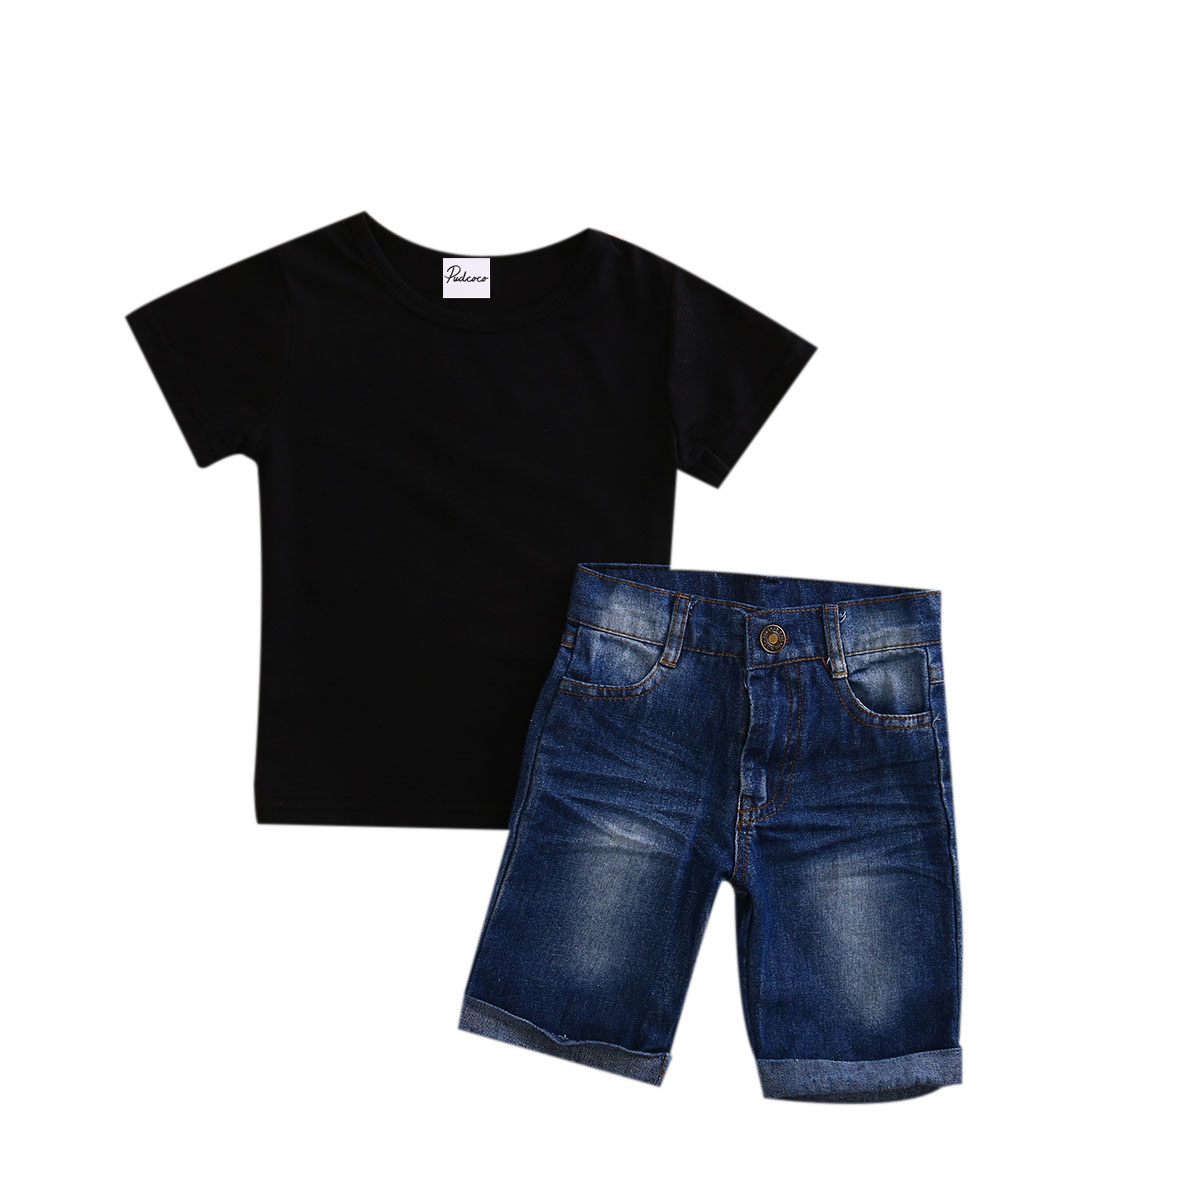 e3ee821d7 Hot sell 2PCS Summer Toddler Baby Boys Clothes Short Sleeve Tops + Jeans  Set Kids Clothing Outfits 0 to 5T